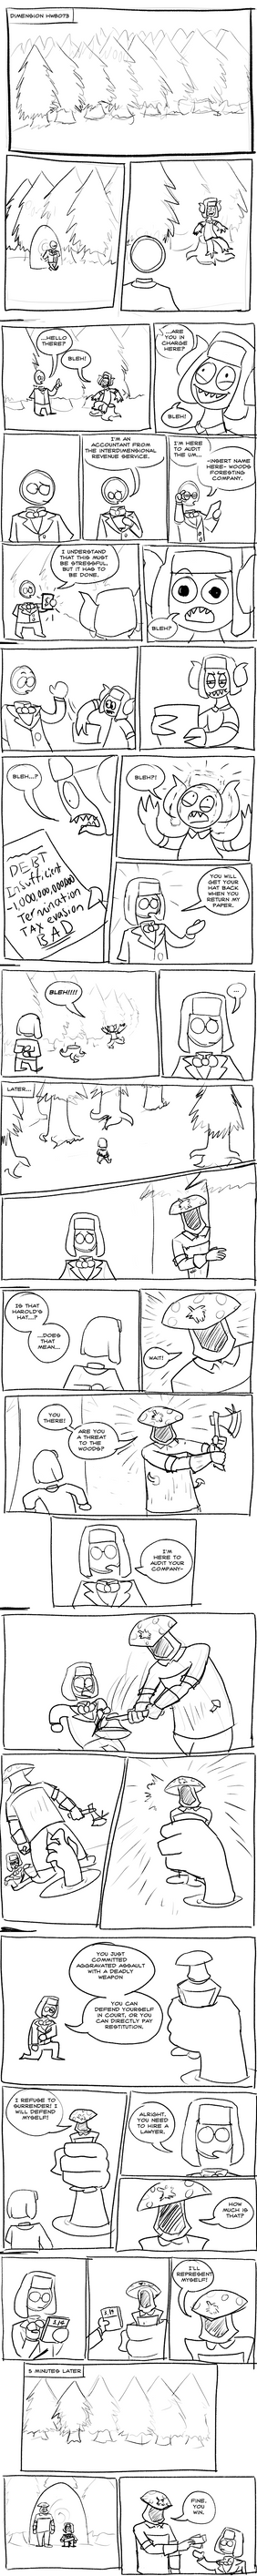 Hardwood OCT Audition: Page 1 by PSIJoel